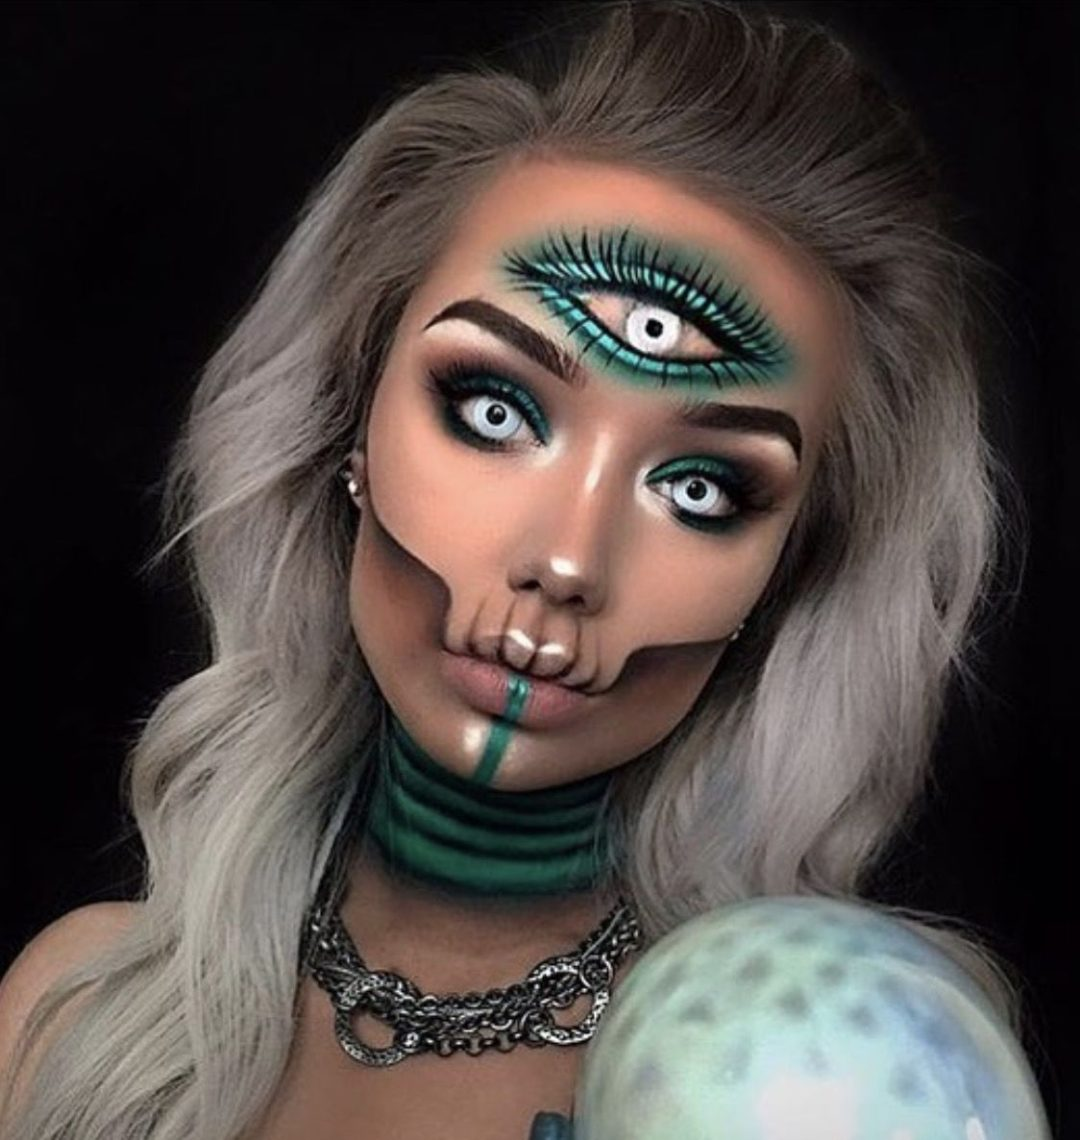 41 Most Jaw-Dropping Halloween Makeup Ideas That Are Still Pretty: Third Eye Makeup - Click though to see more awe inspiring pretty Halloween makeup looks, gorgeous Halloween makeup and Halloween costumes. #halloweenmakeup #halloweenmakeuppretty #halloweencostumes #halloweenmakeupinspo #thirdeyemakeup